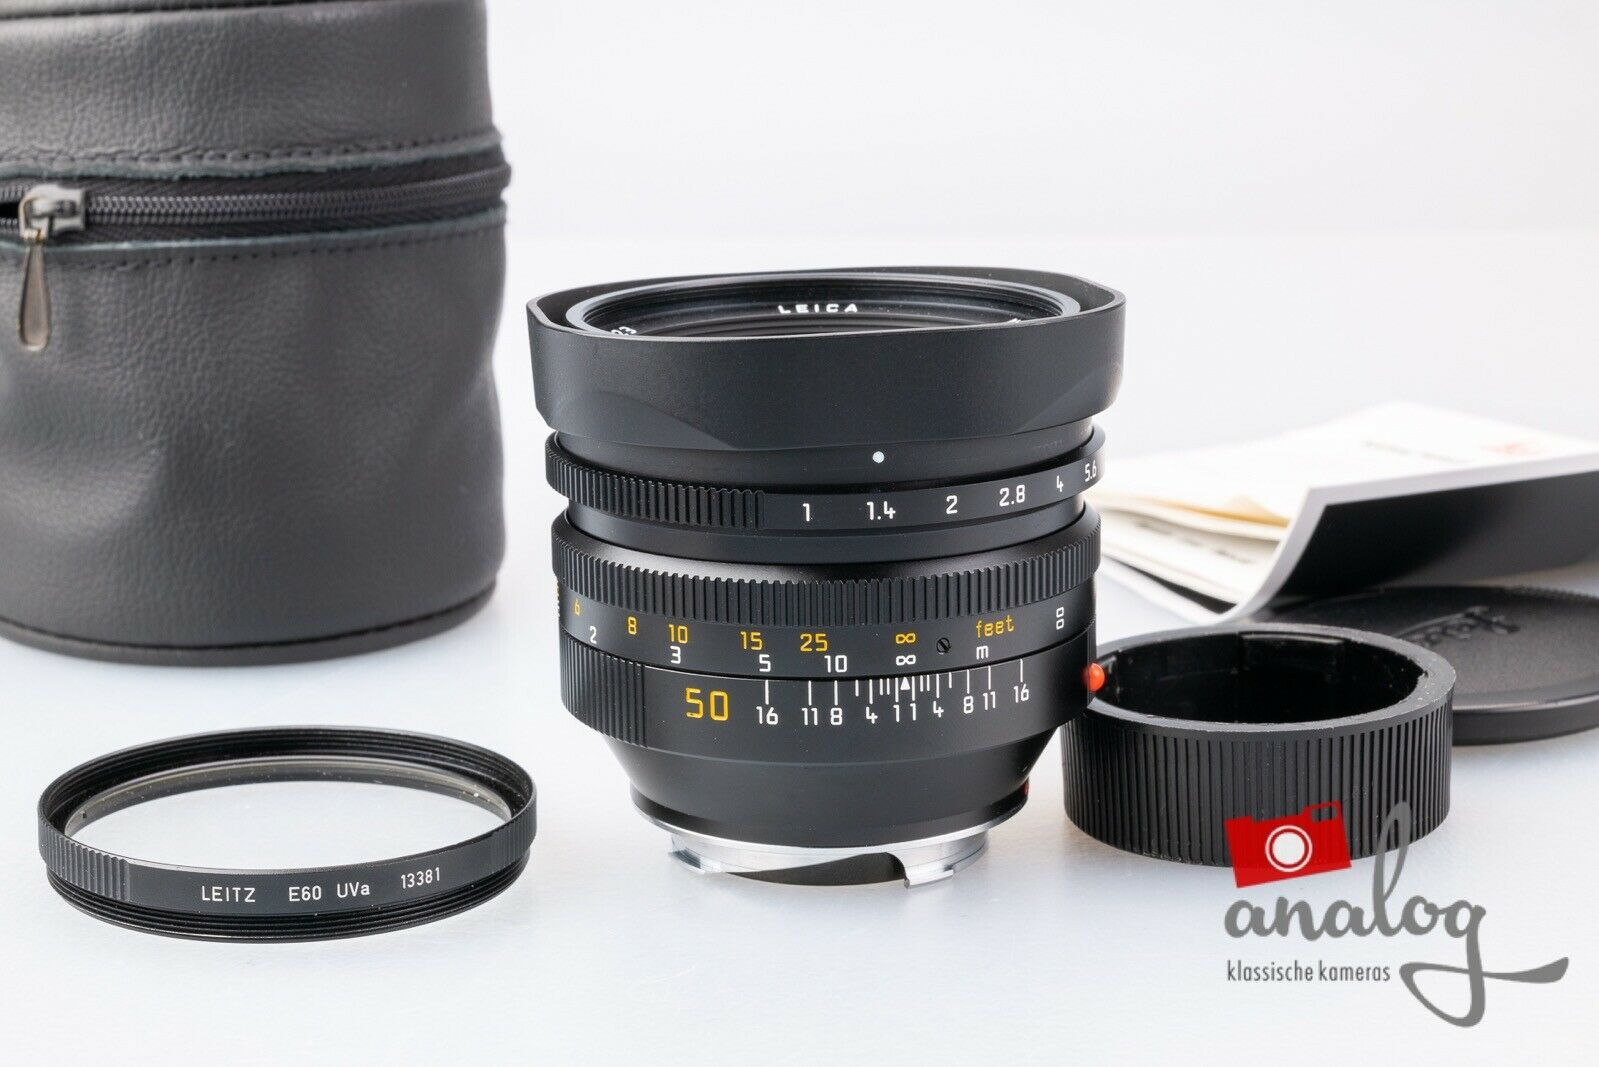 Leica Noctilux 50mm 1.0 4th Version - 11822 - Leica-Service + 6Bit-Codierung